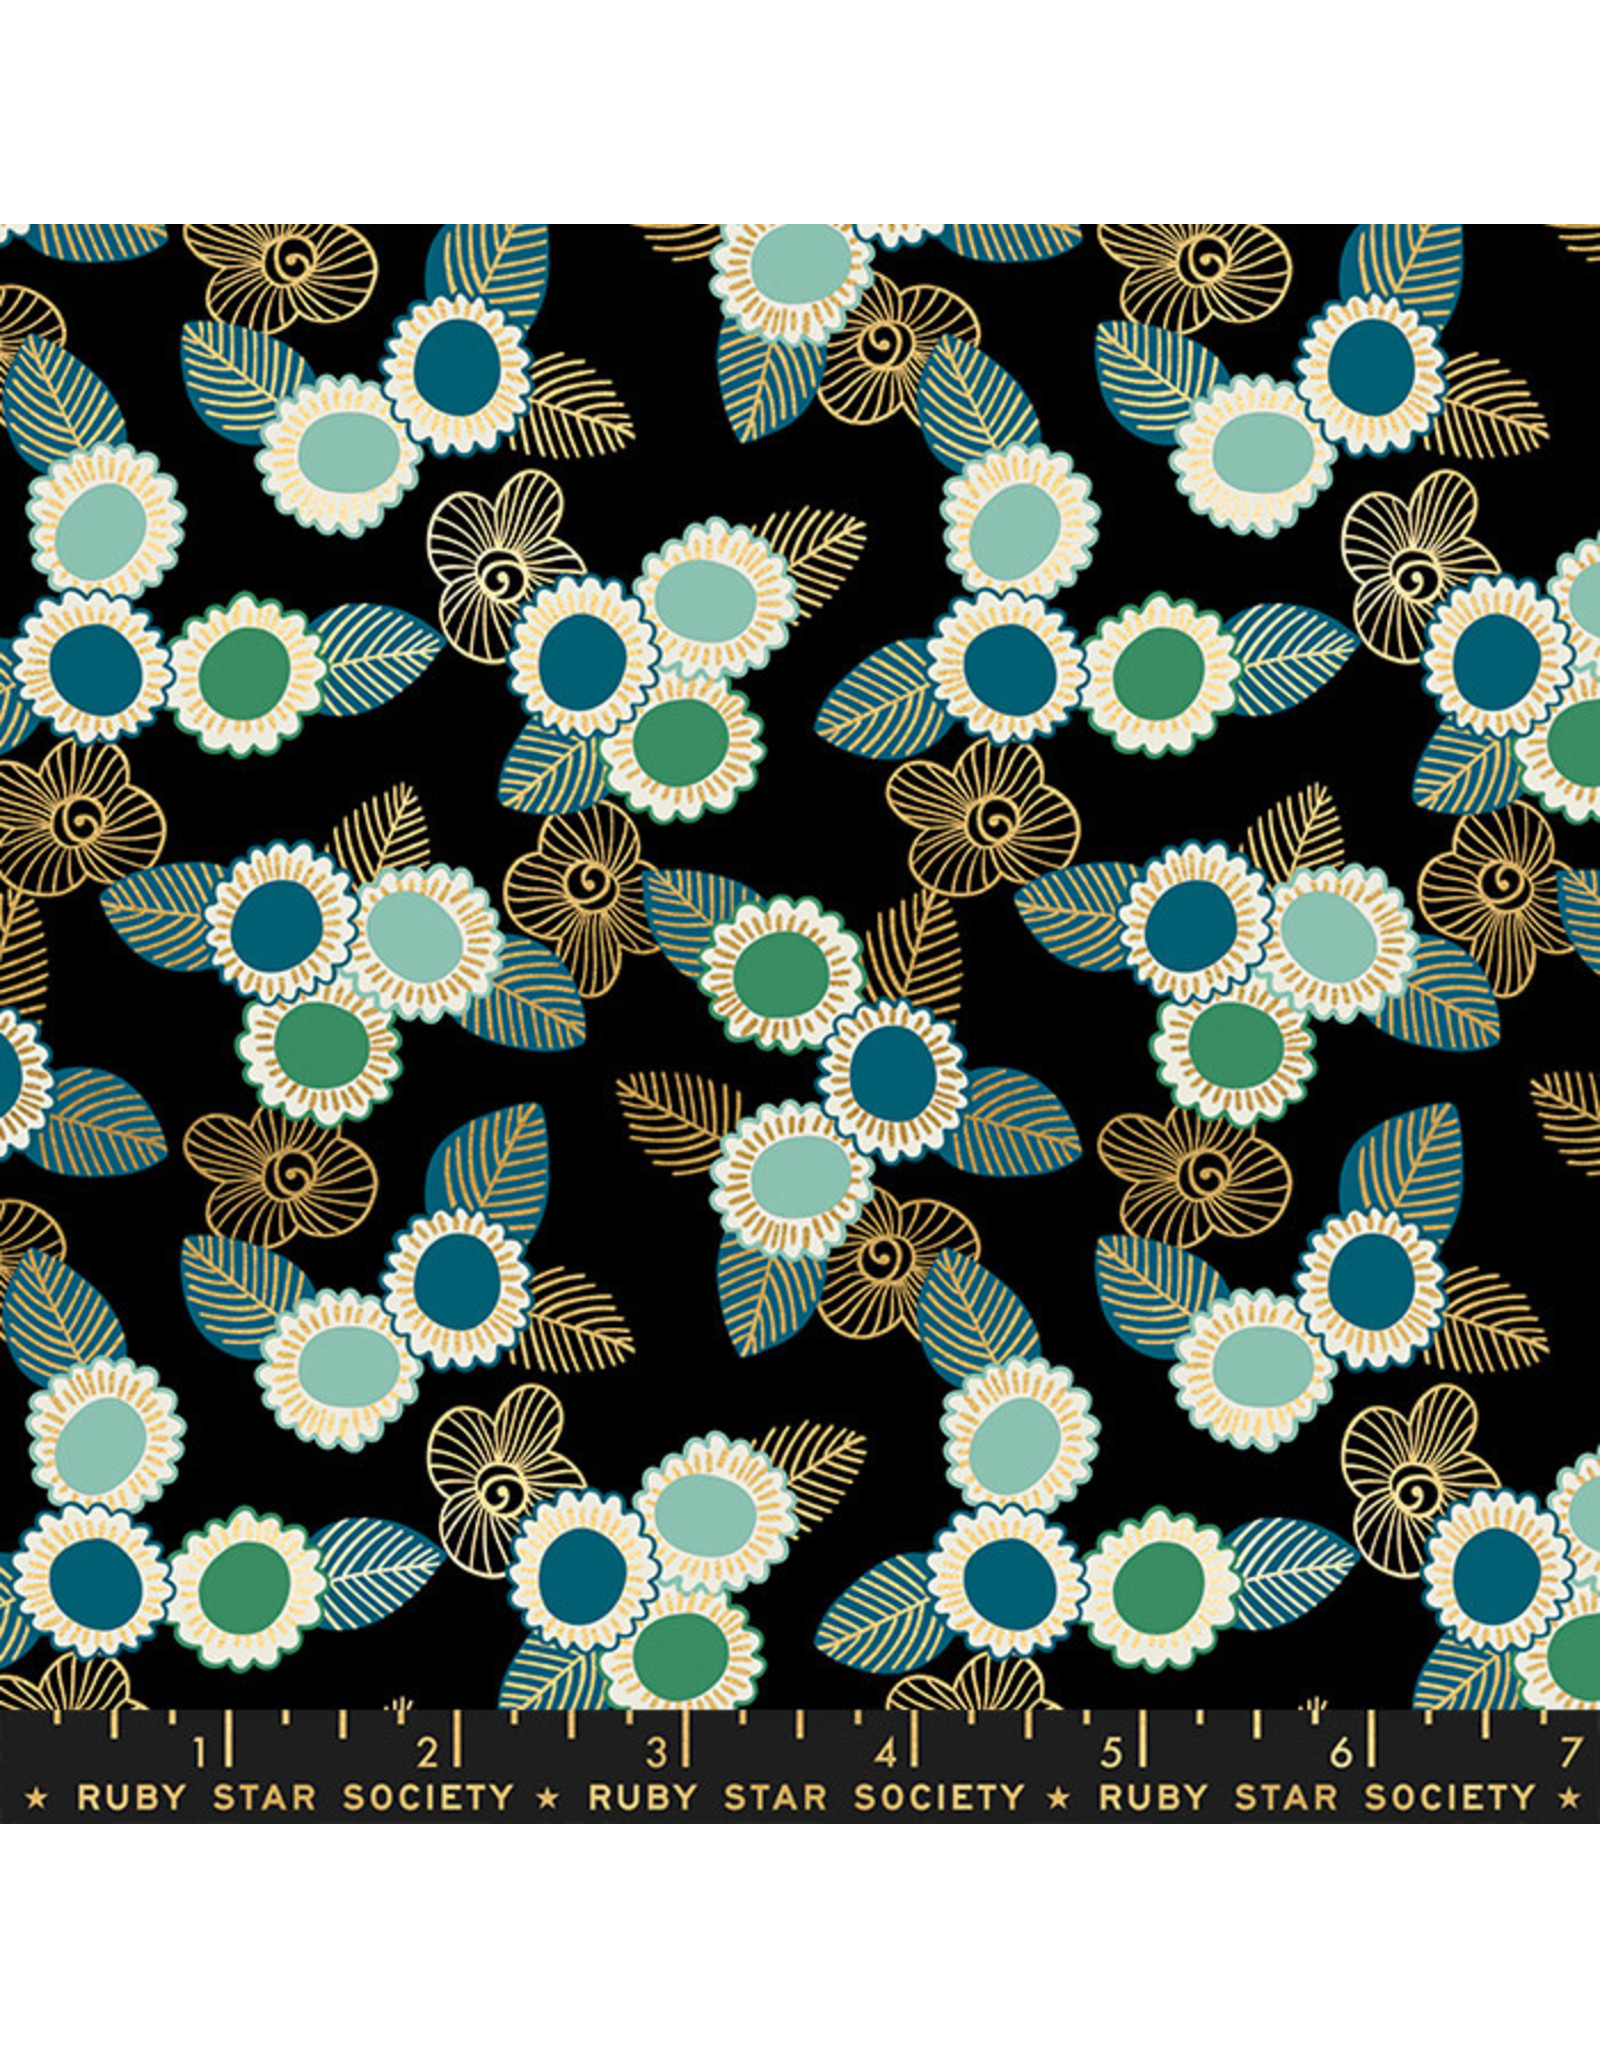 Sarah Watts Ruby Star Society, Purl, Embroidered Floral in Black with Gold Metallic, Fabric Half-Yards